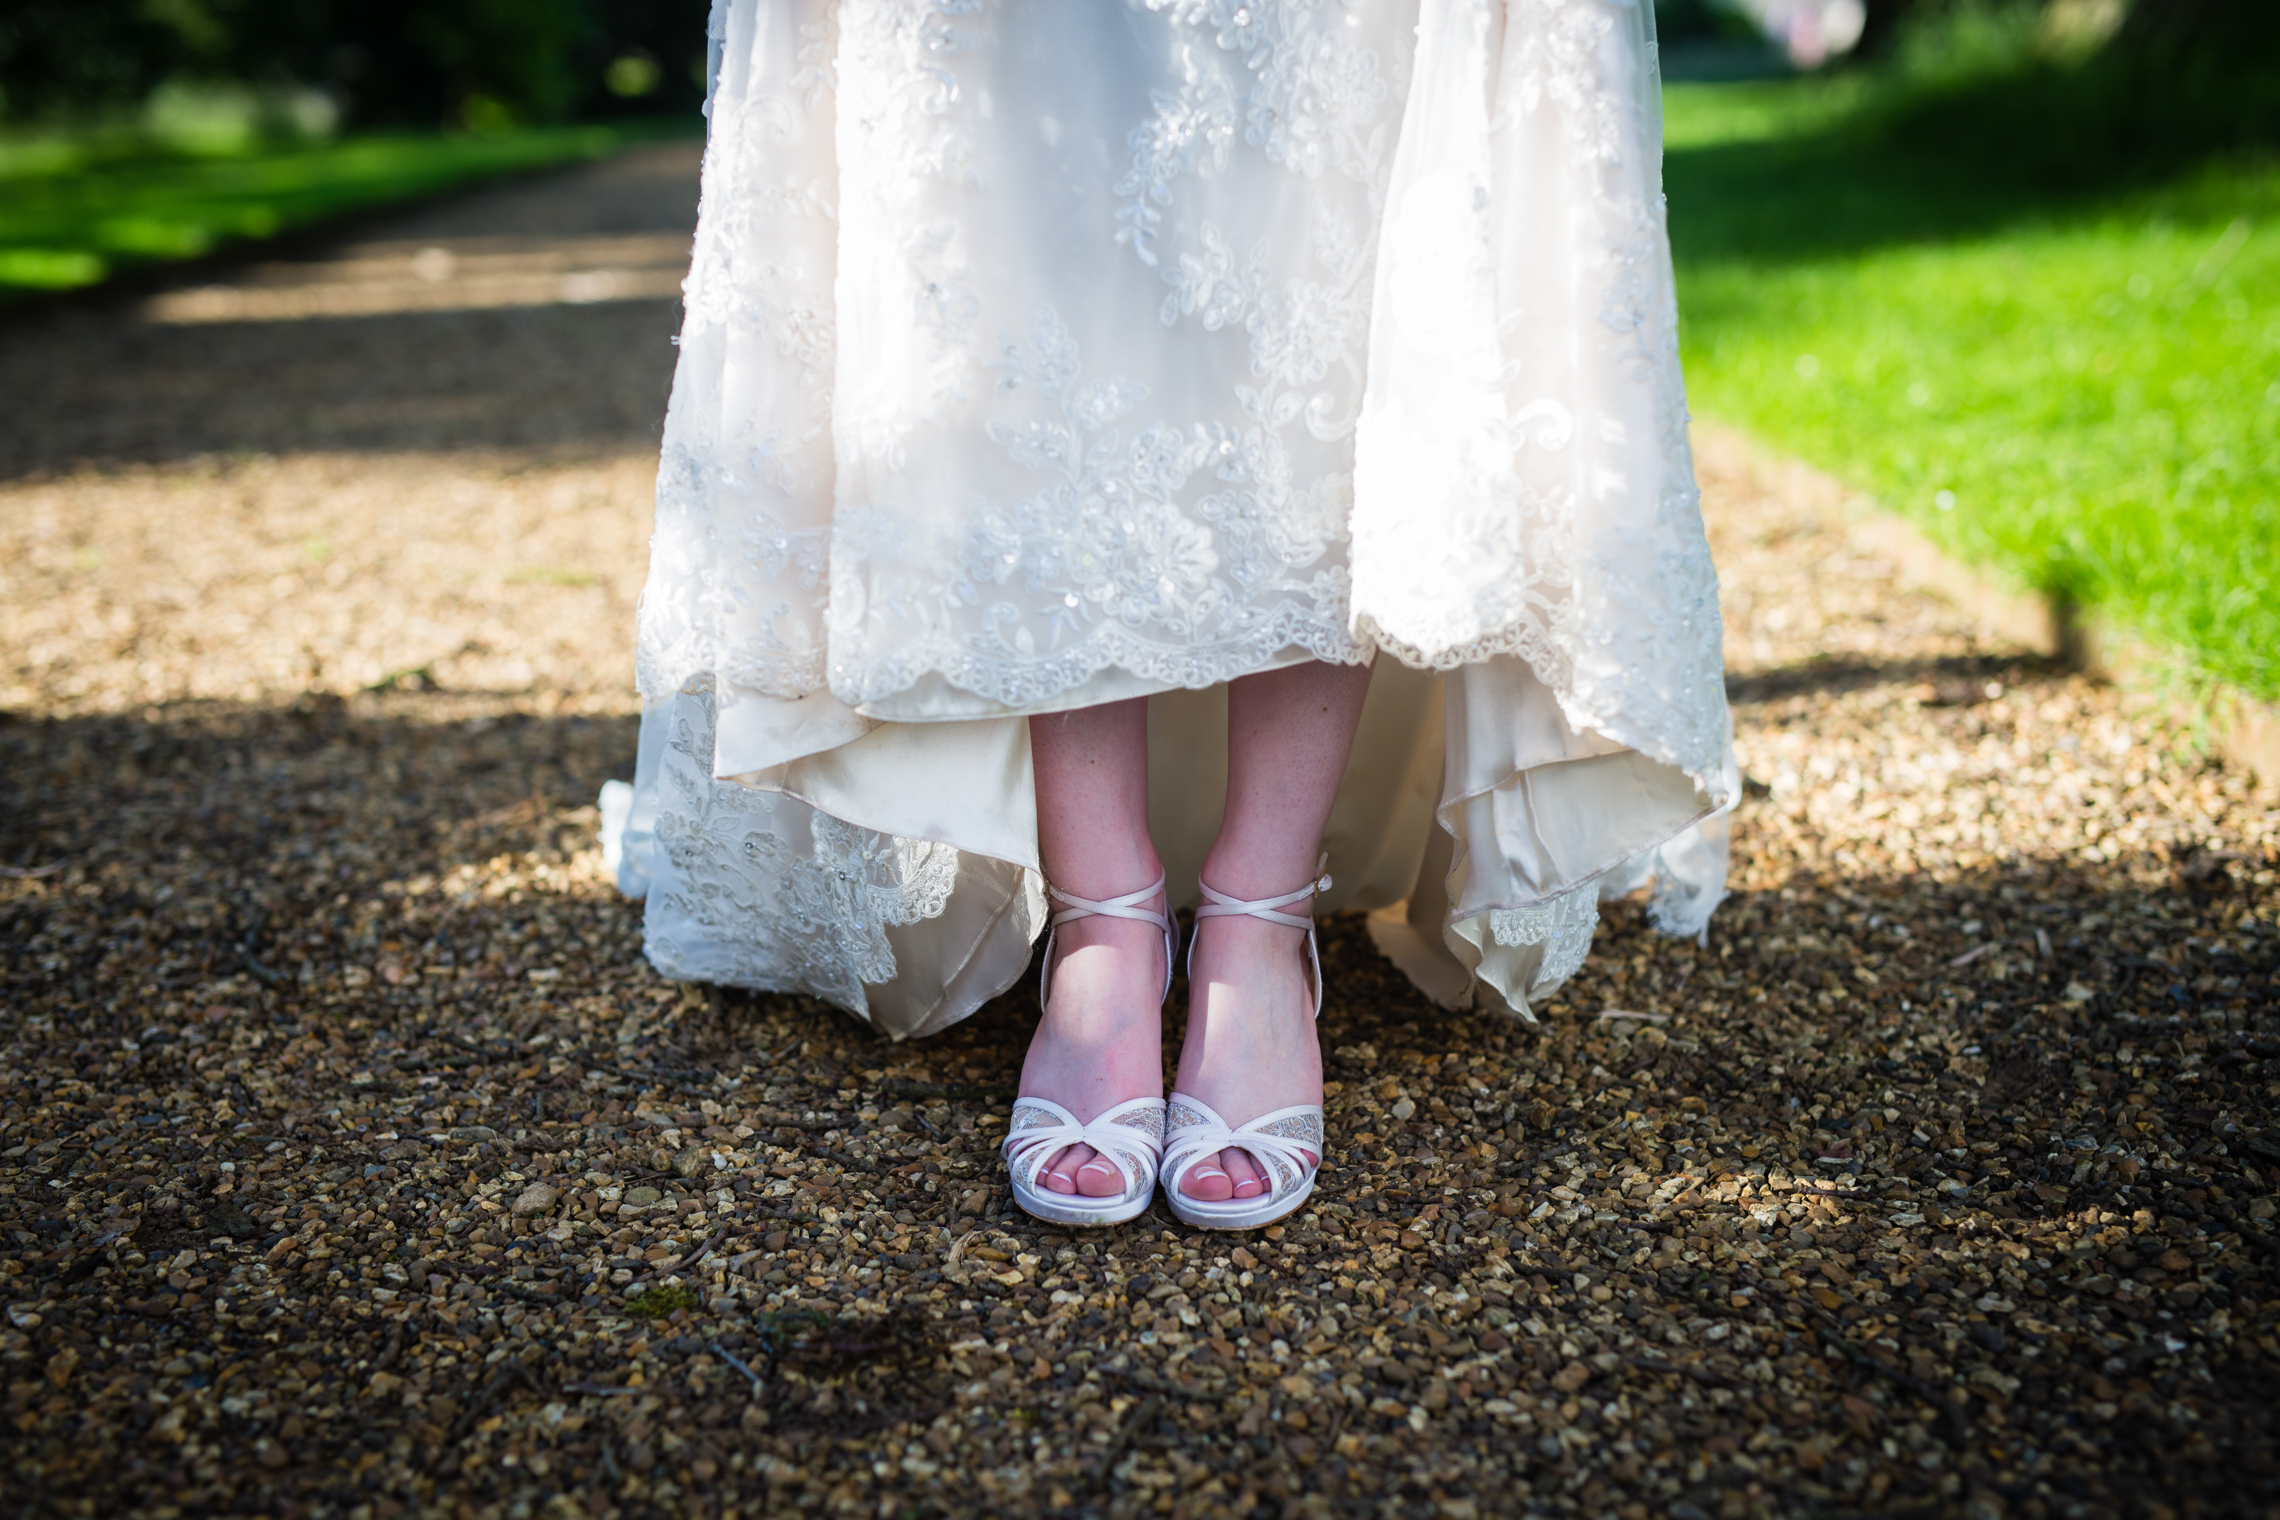 woburn_sculpture_gallery_wedding_photography_woburn_abbey_wedding_photography-39